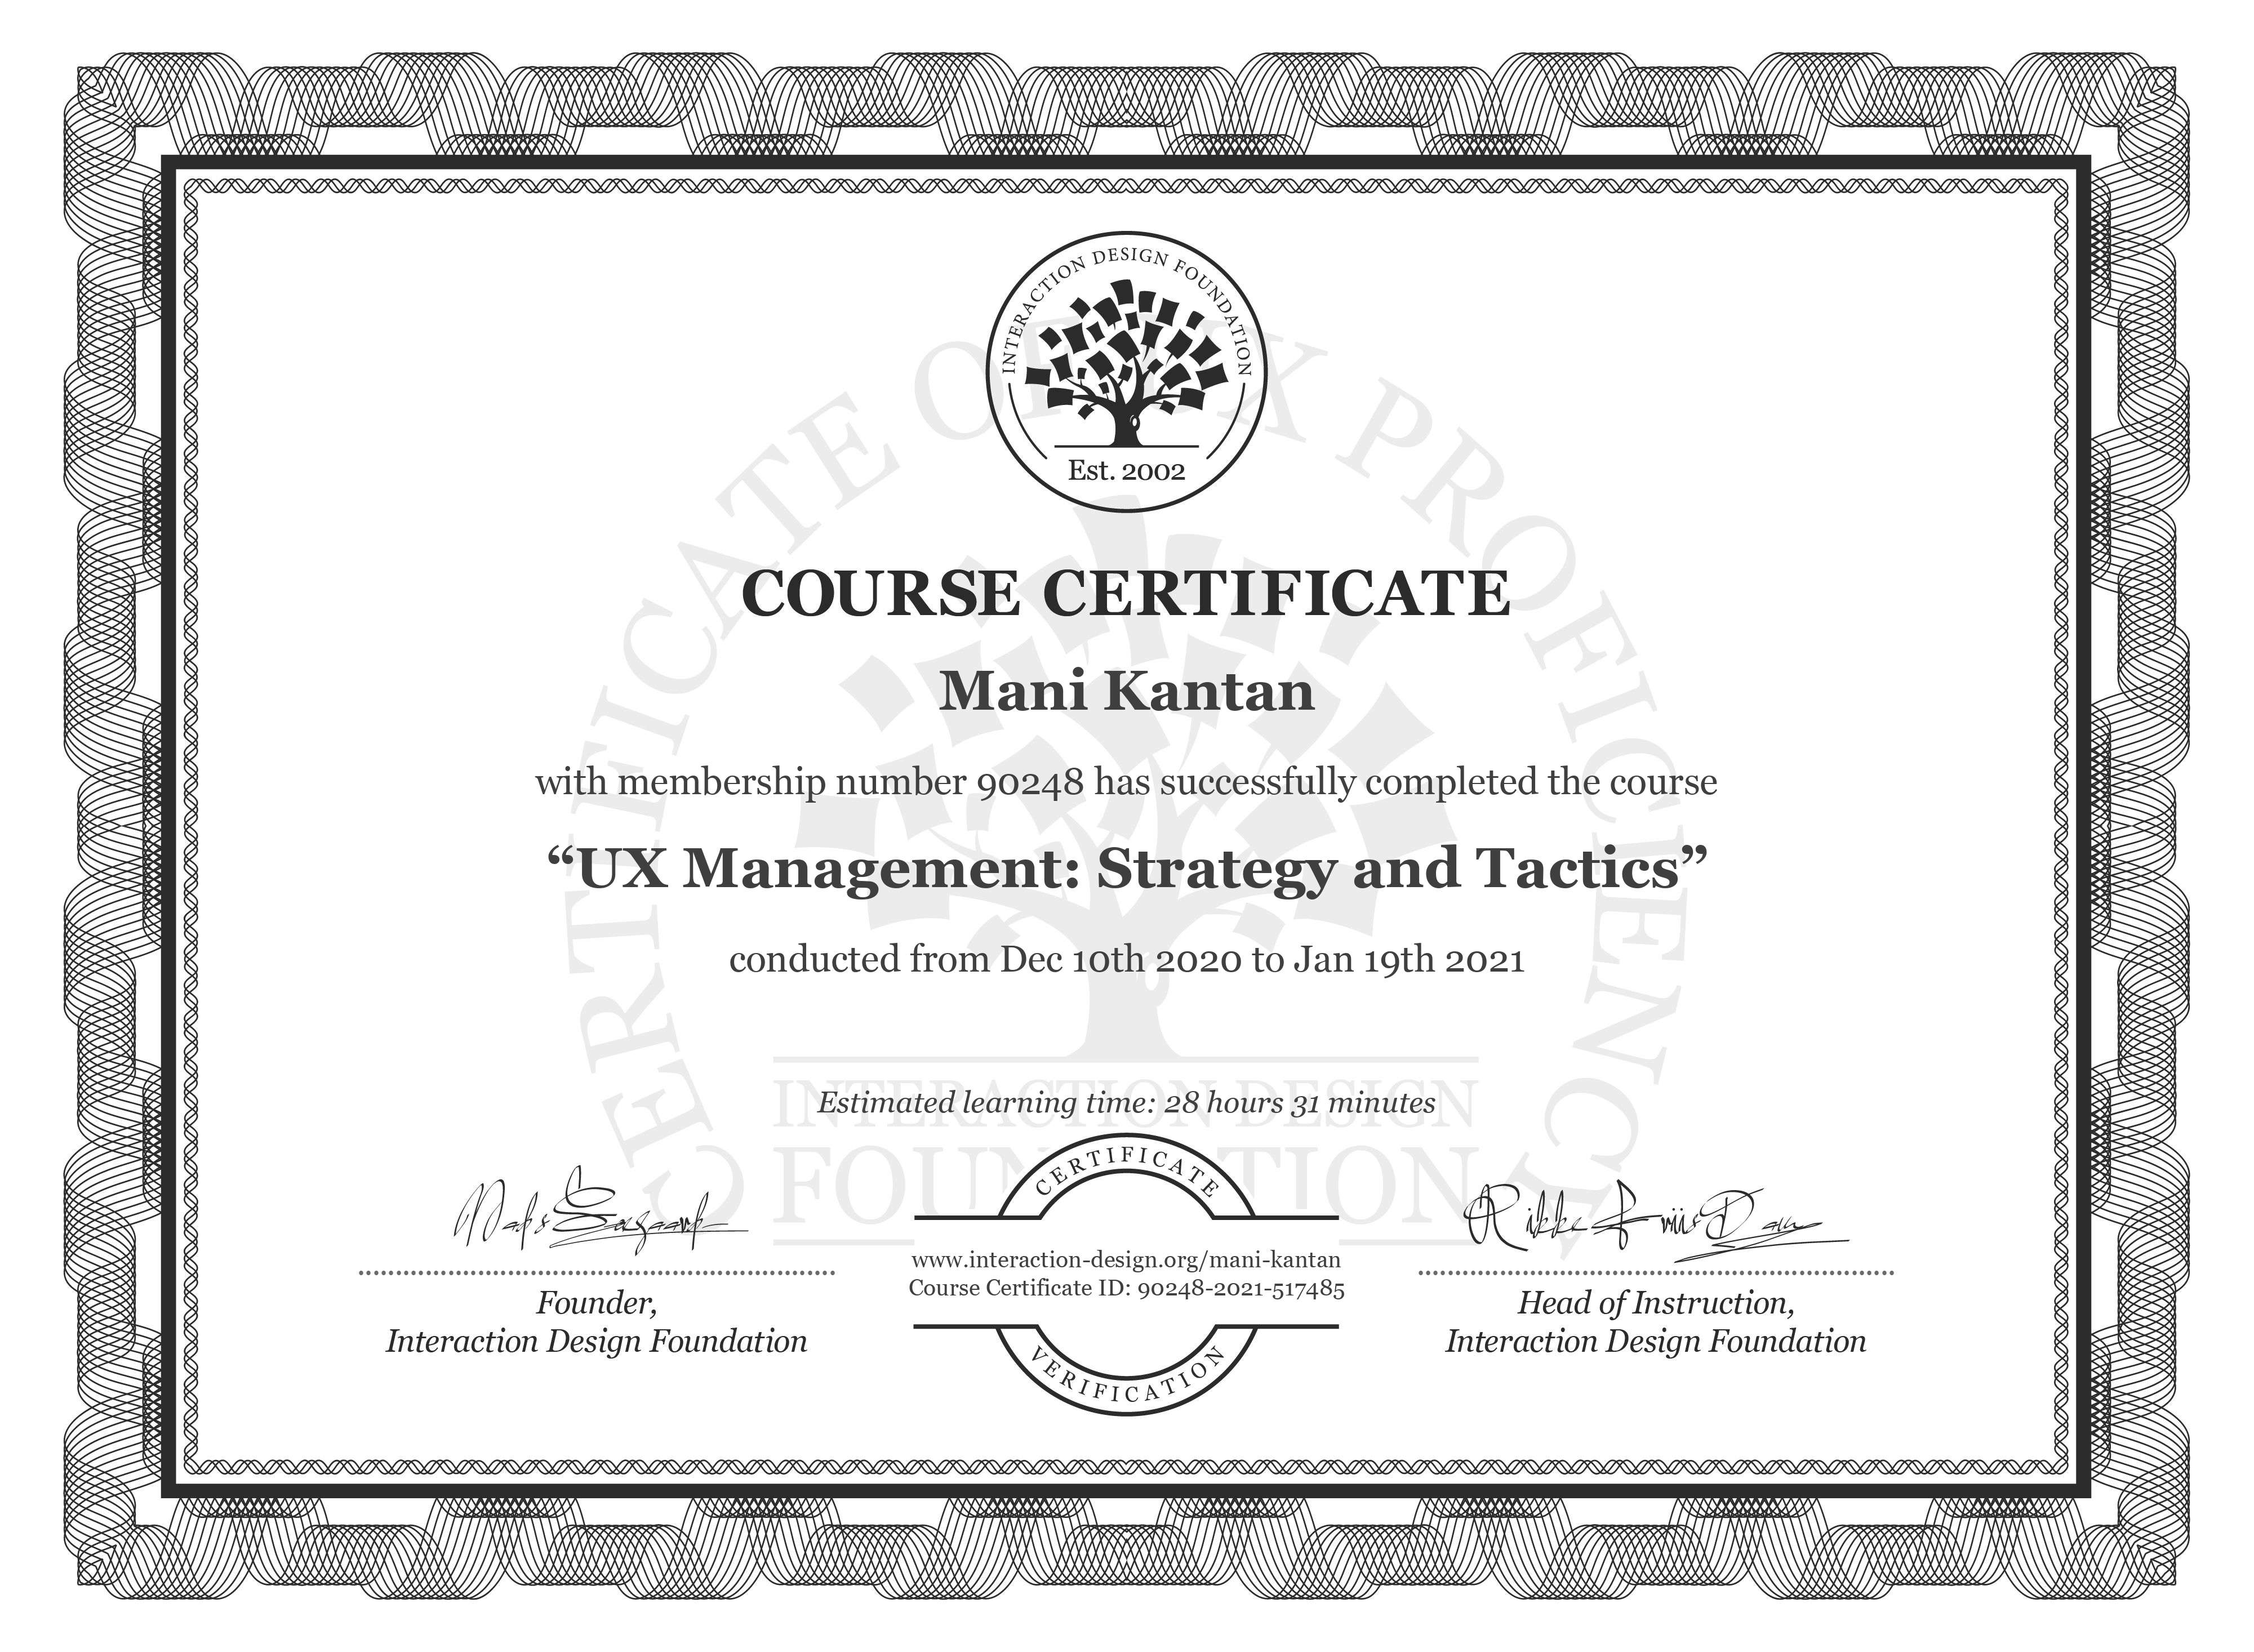 Mani Kantan's Course Certificate: UX Management: Strategy and Tactics